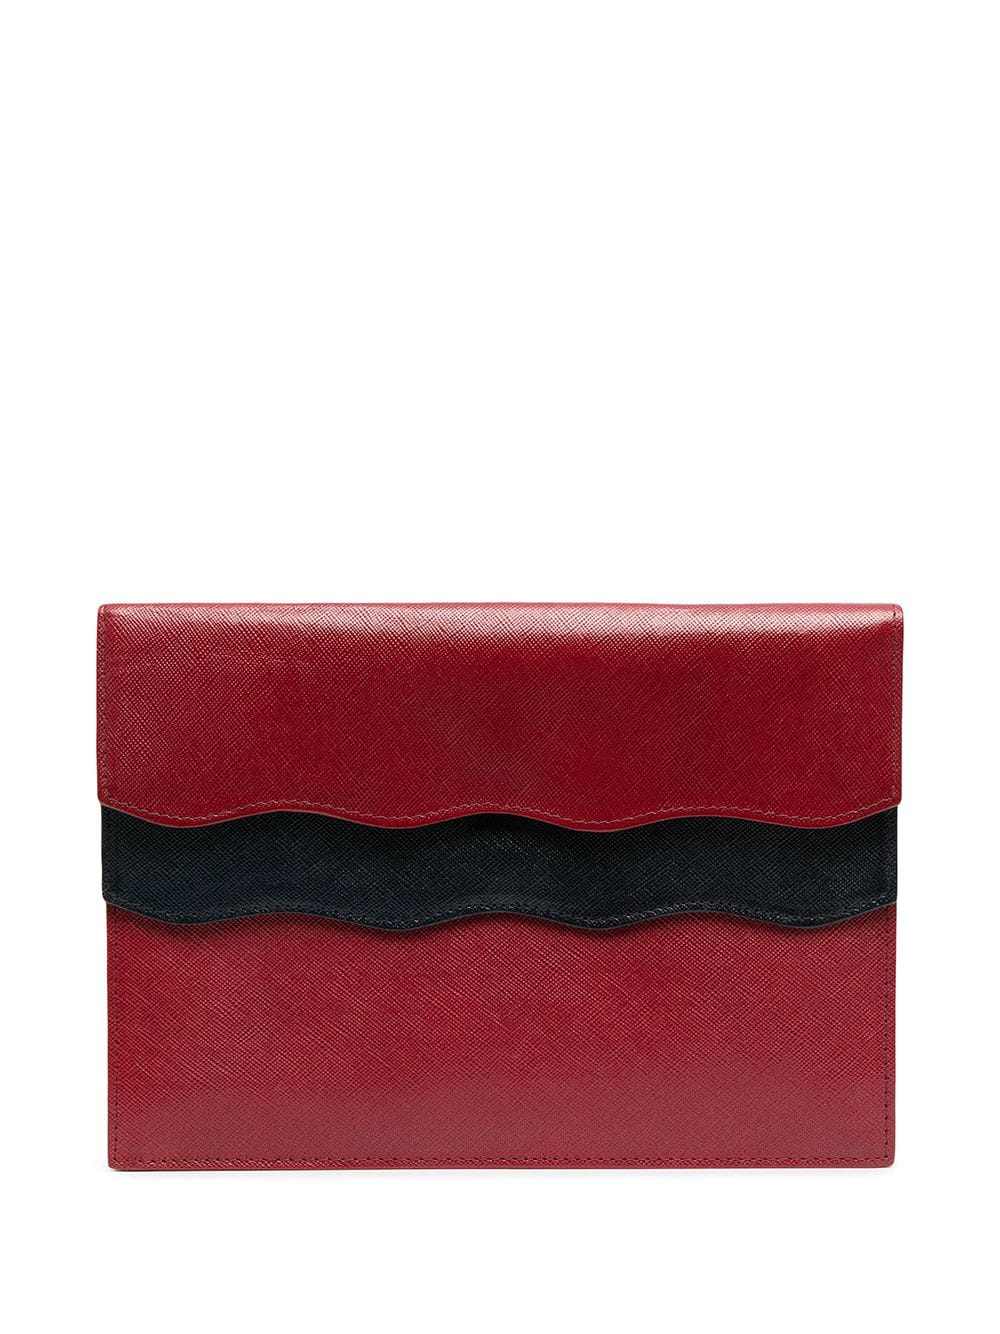 Christian Dior Pre-owned Clutch - Rot